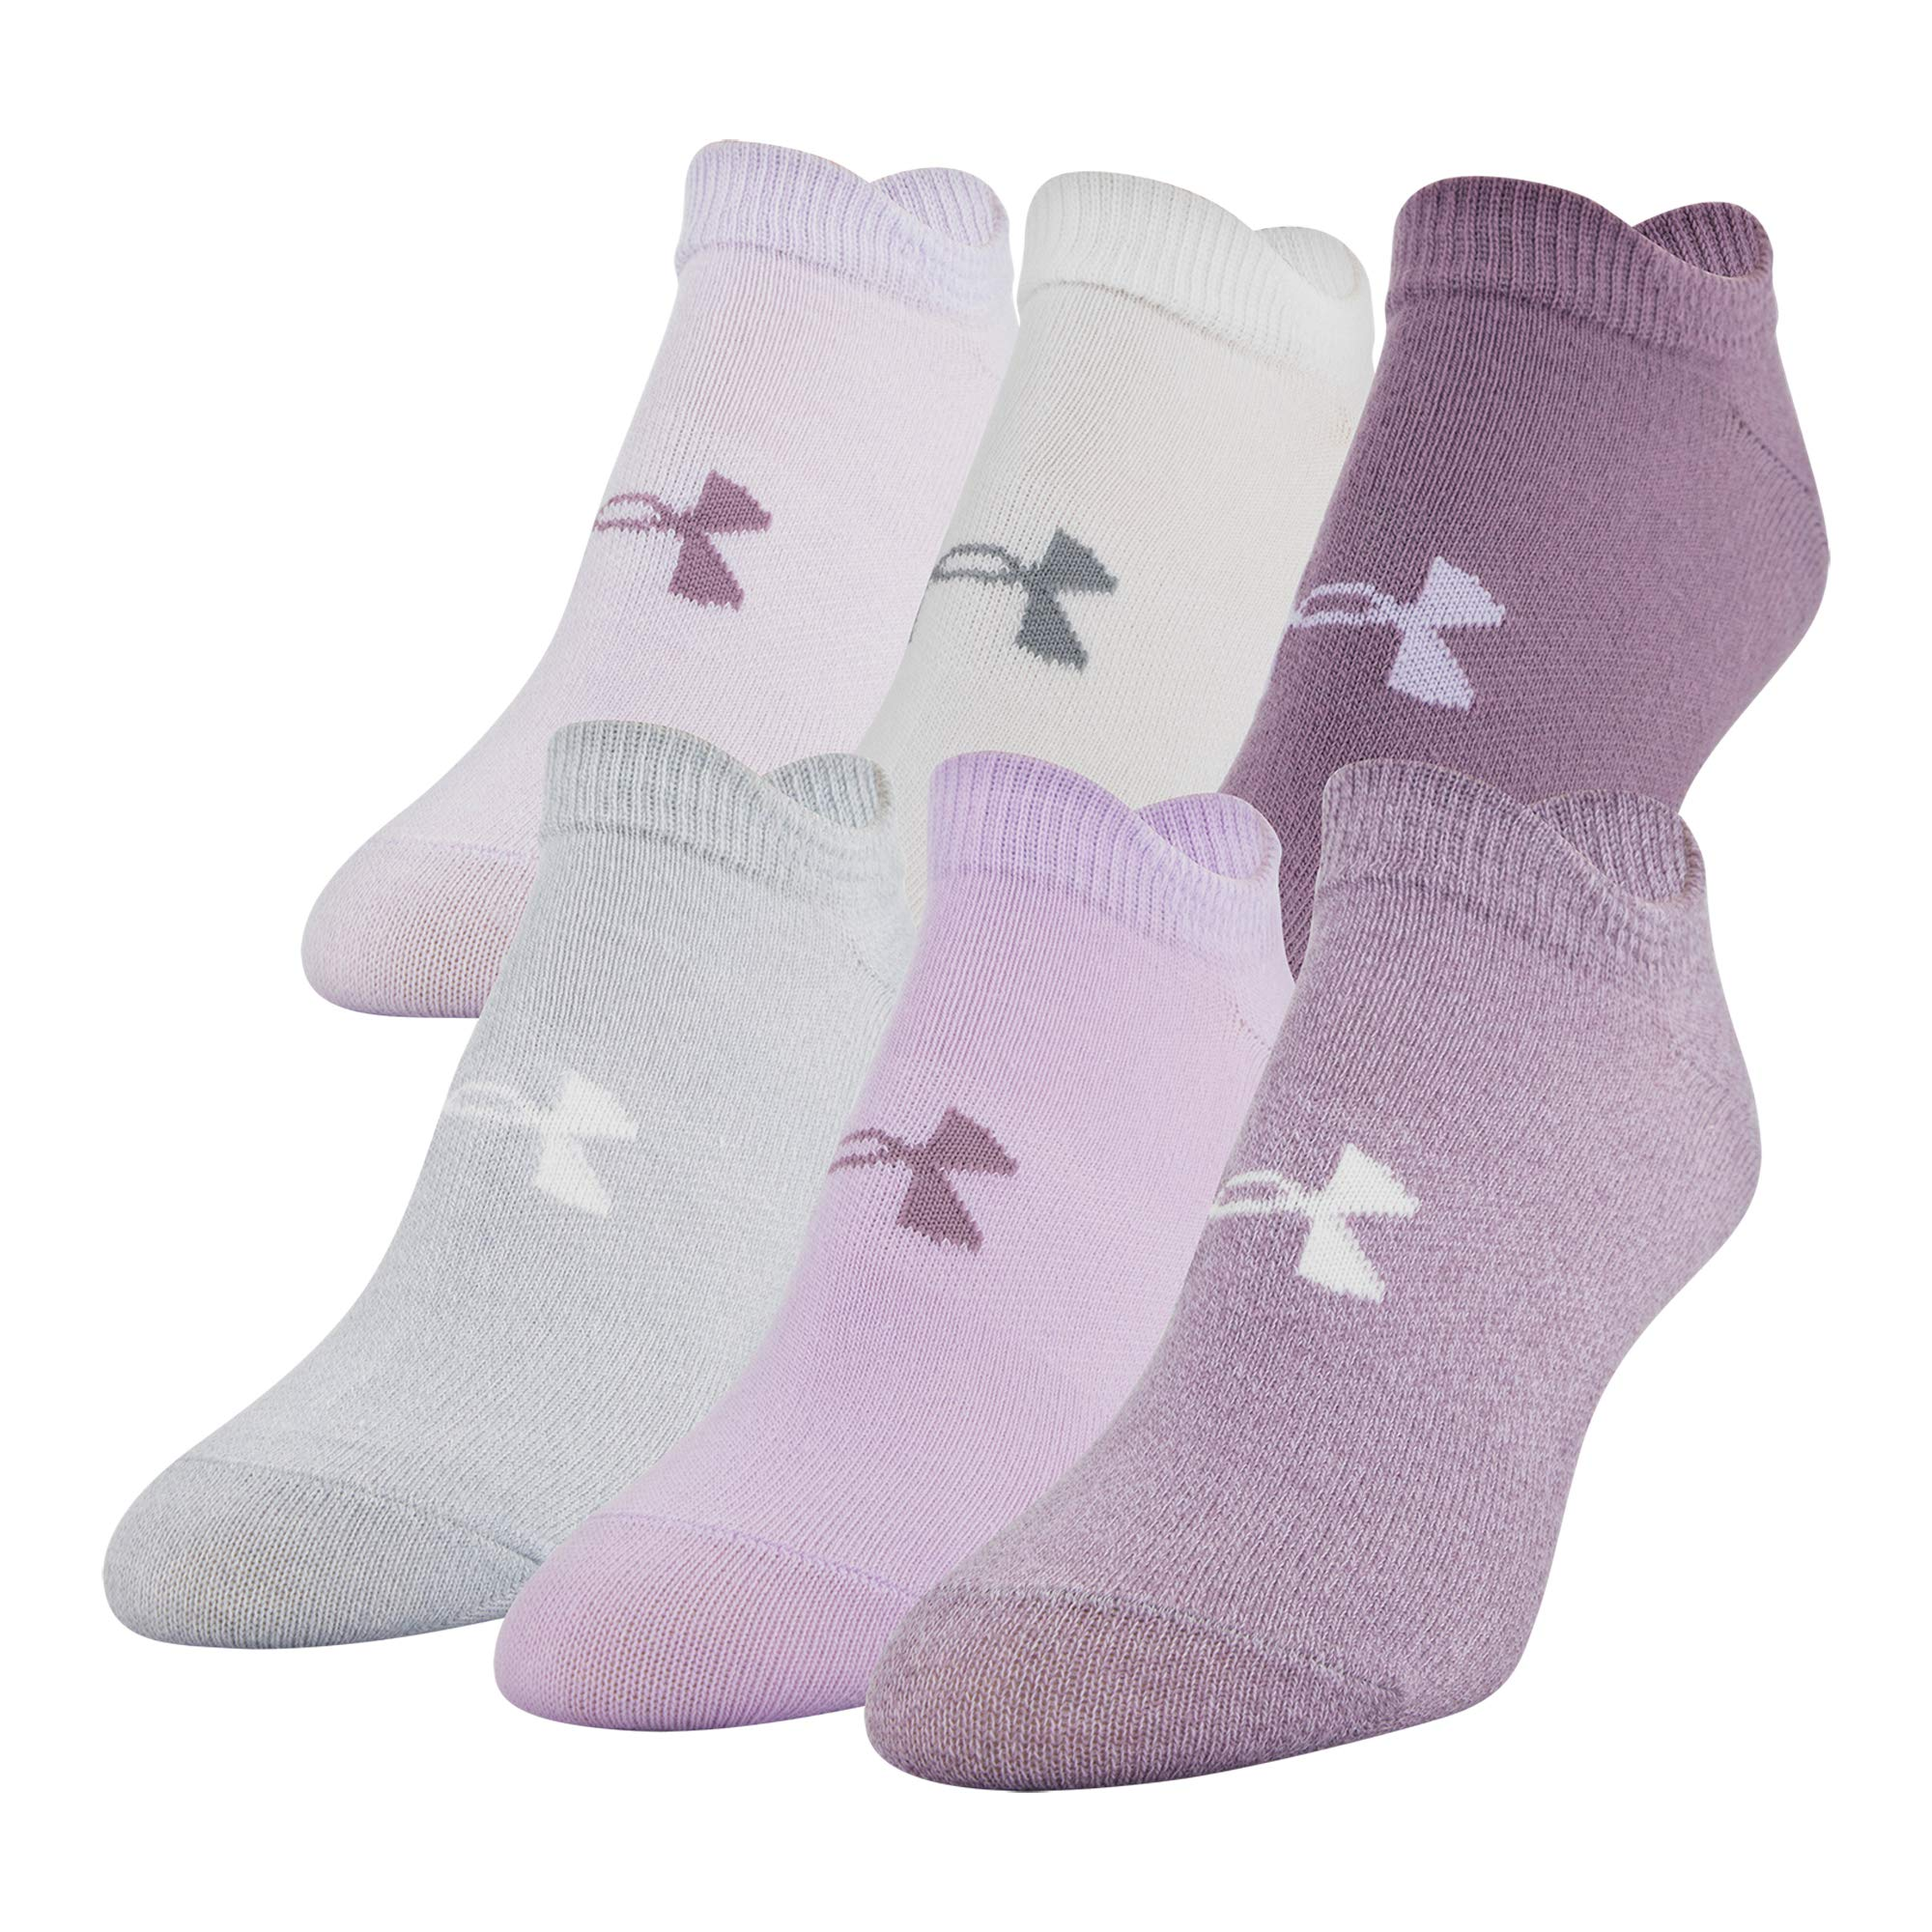 Under Armour Women's Essential 2.0 No Show Socks, 6-Pair, Purple Assorted, Shoe Size: 6-9 by Under Armour